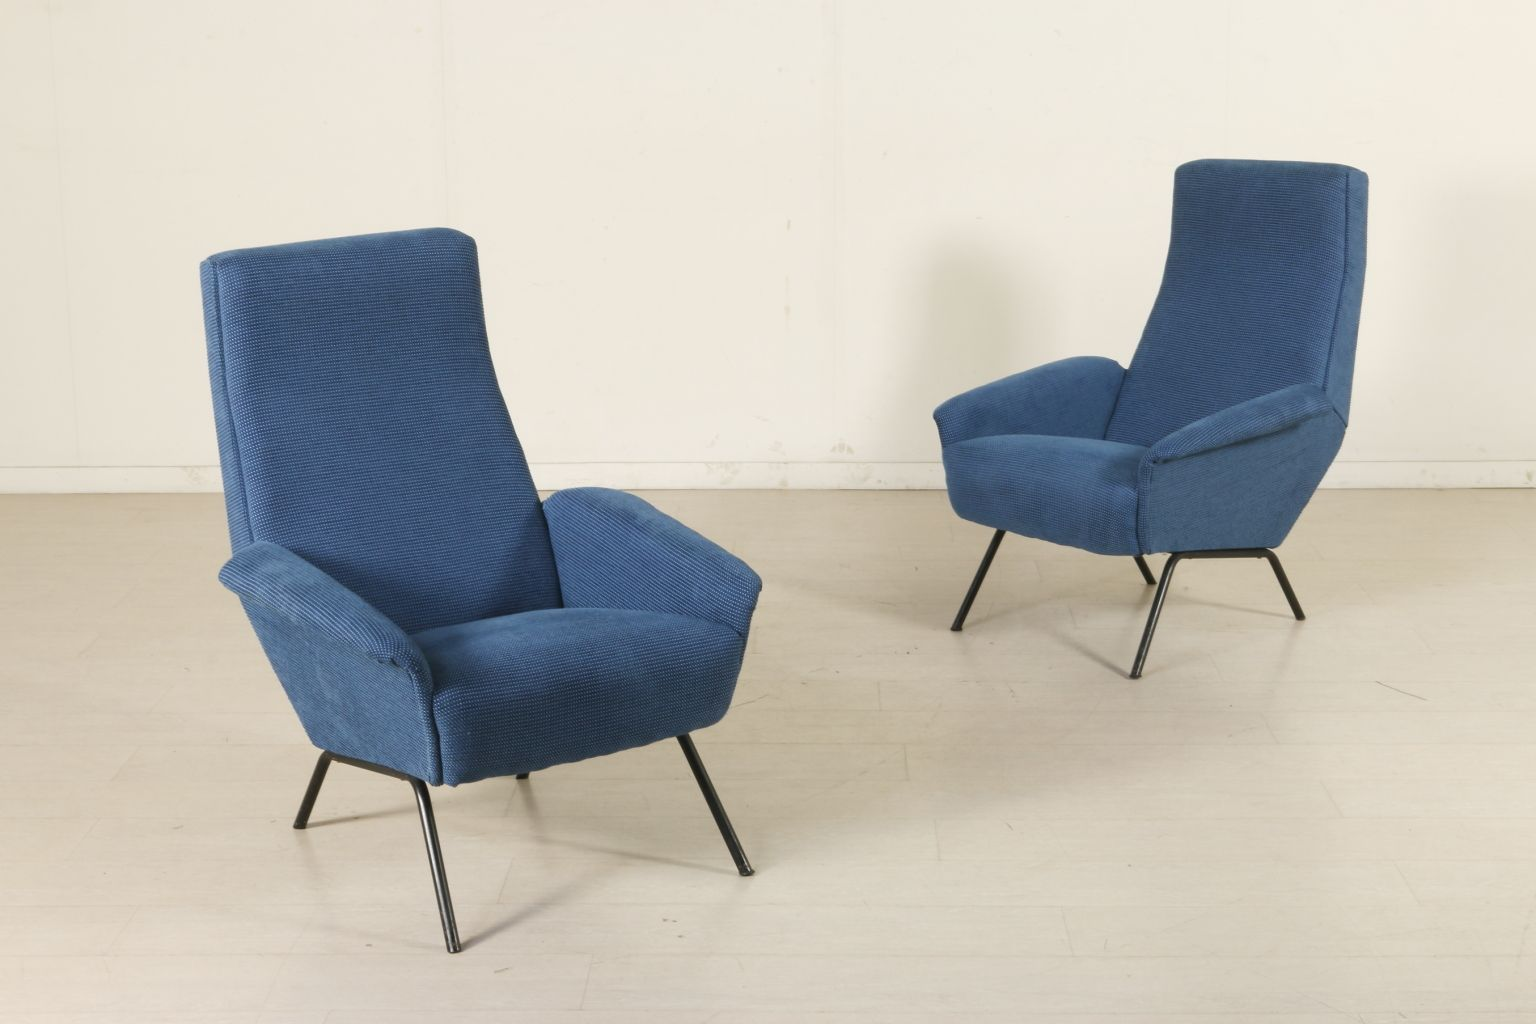 Blue italian armchairs 1960s set of 2 for sale at pamono for 2 armchairs for sale